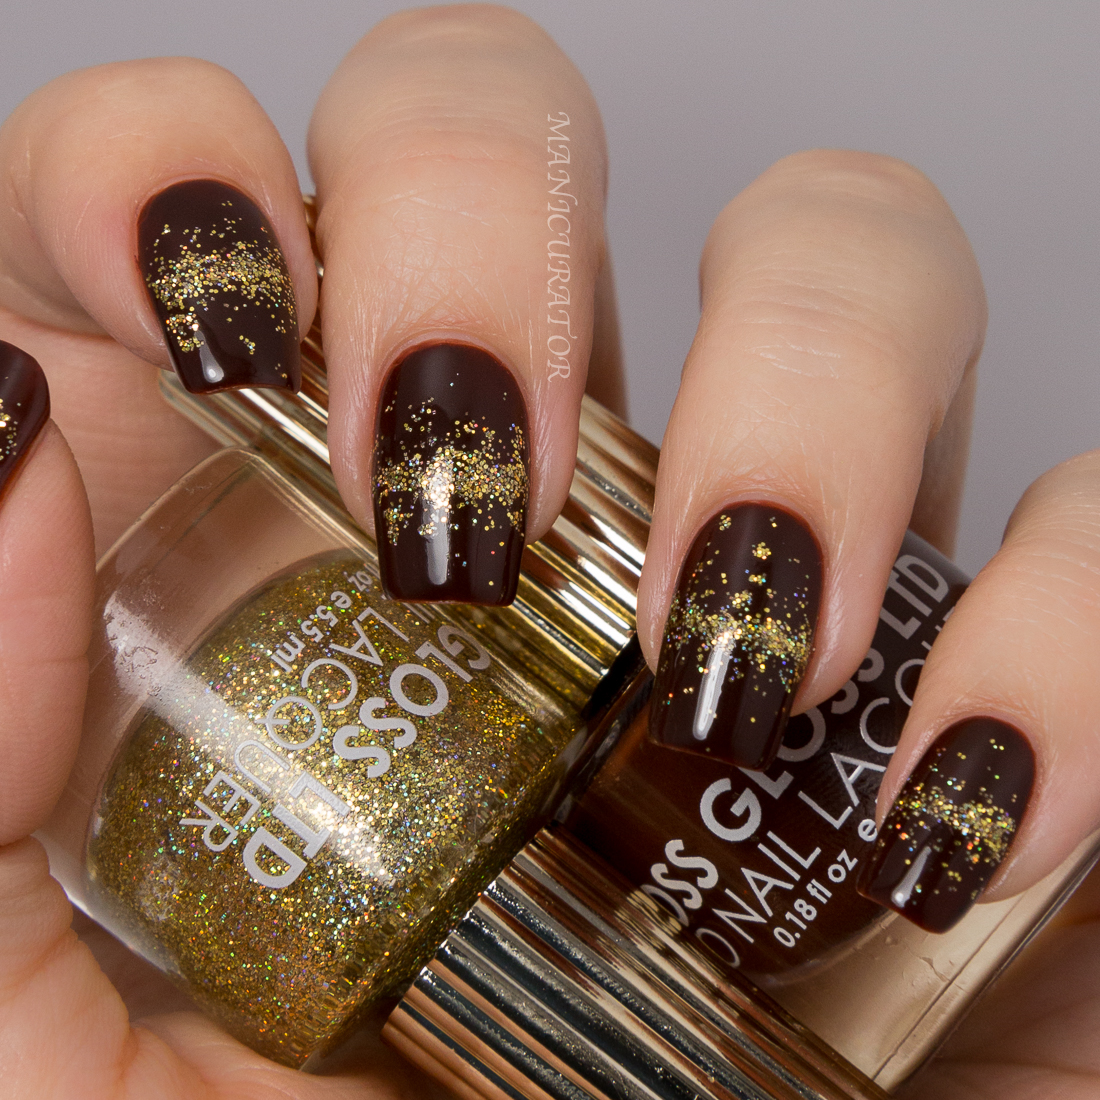 Floss-Gloss-Stun-Blood, Suede and Tears-gradient-Nail-Art